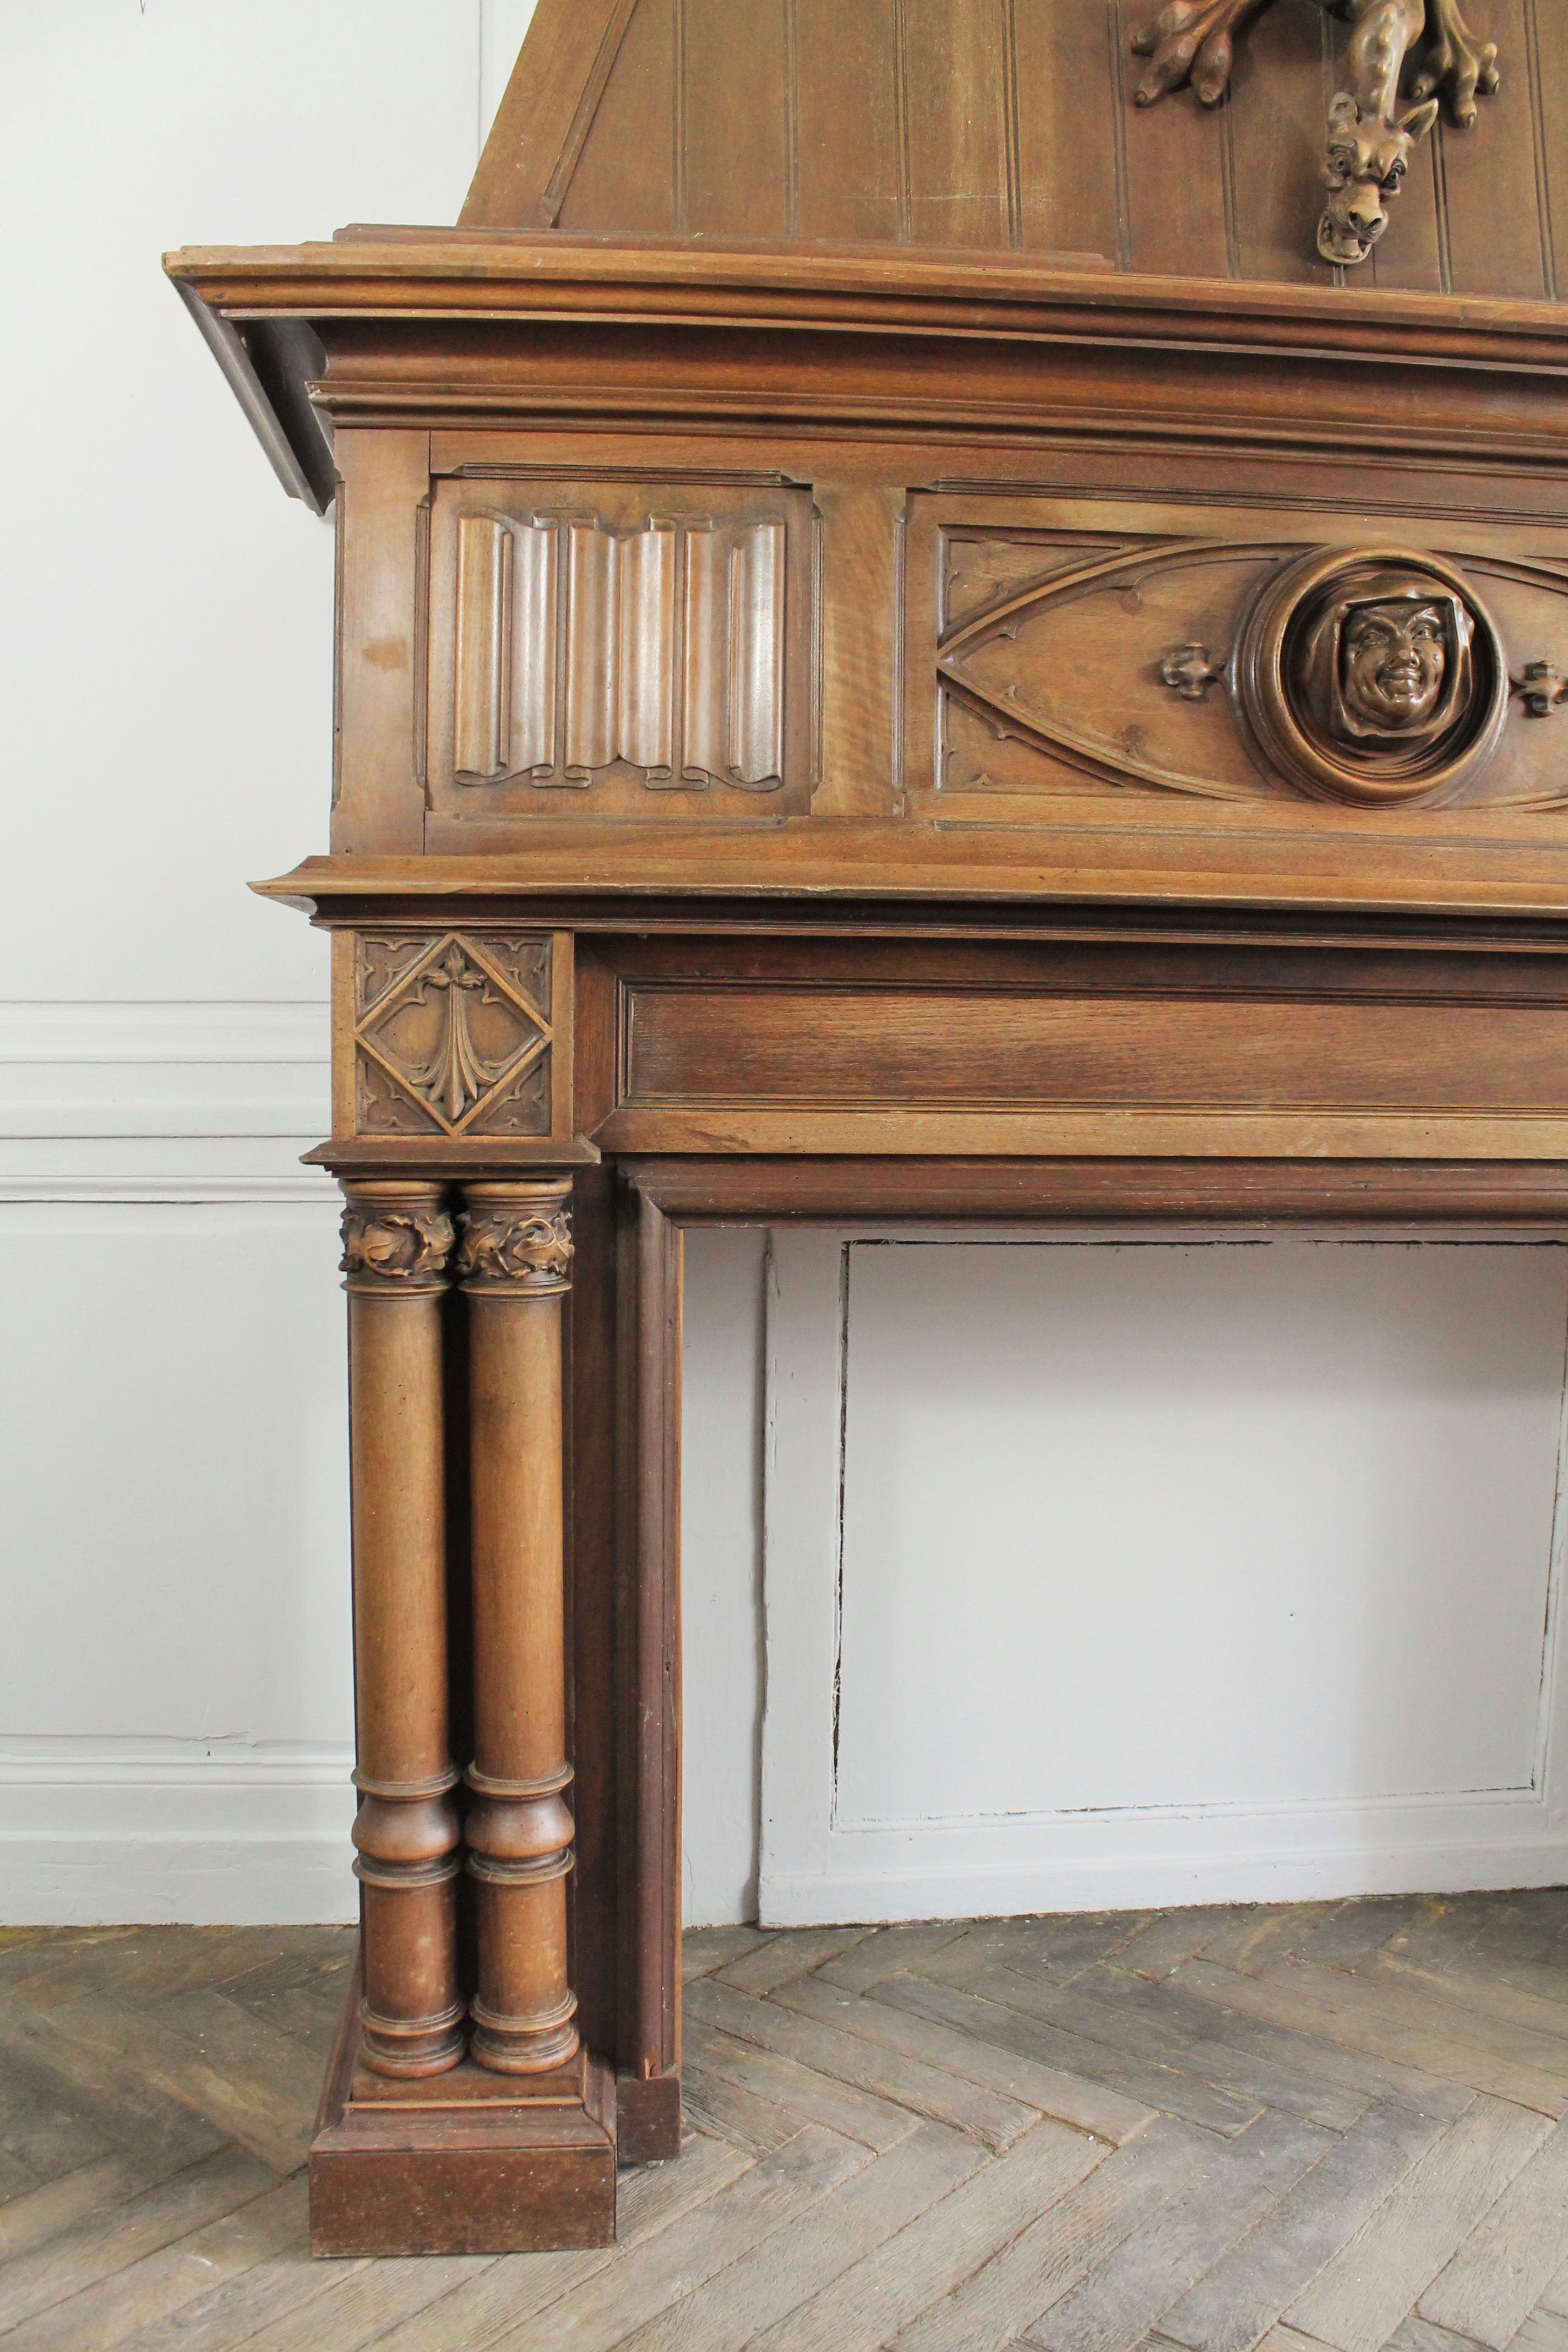 Gothic Revival Fireplace With Its Hood And Carved Salamander, Witch